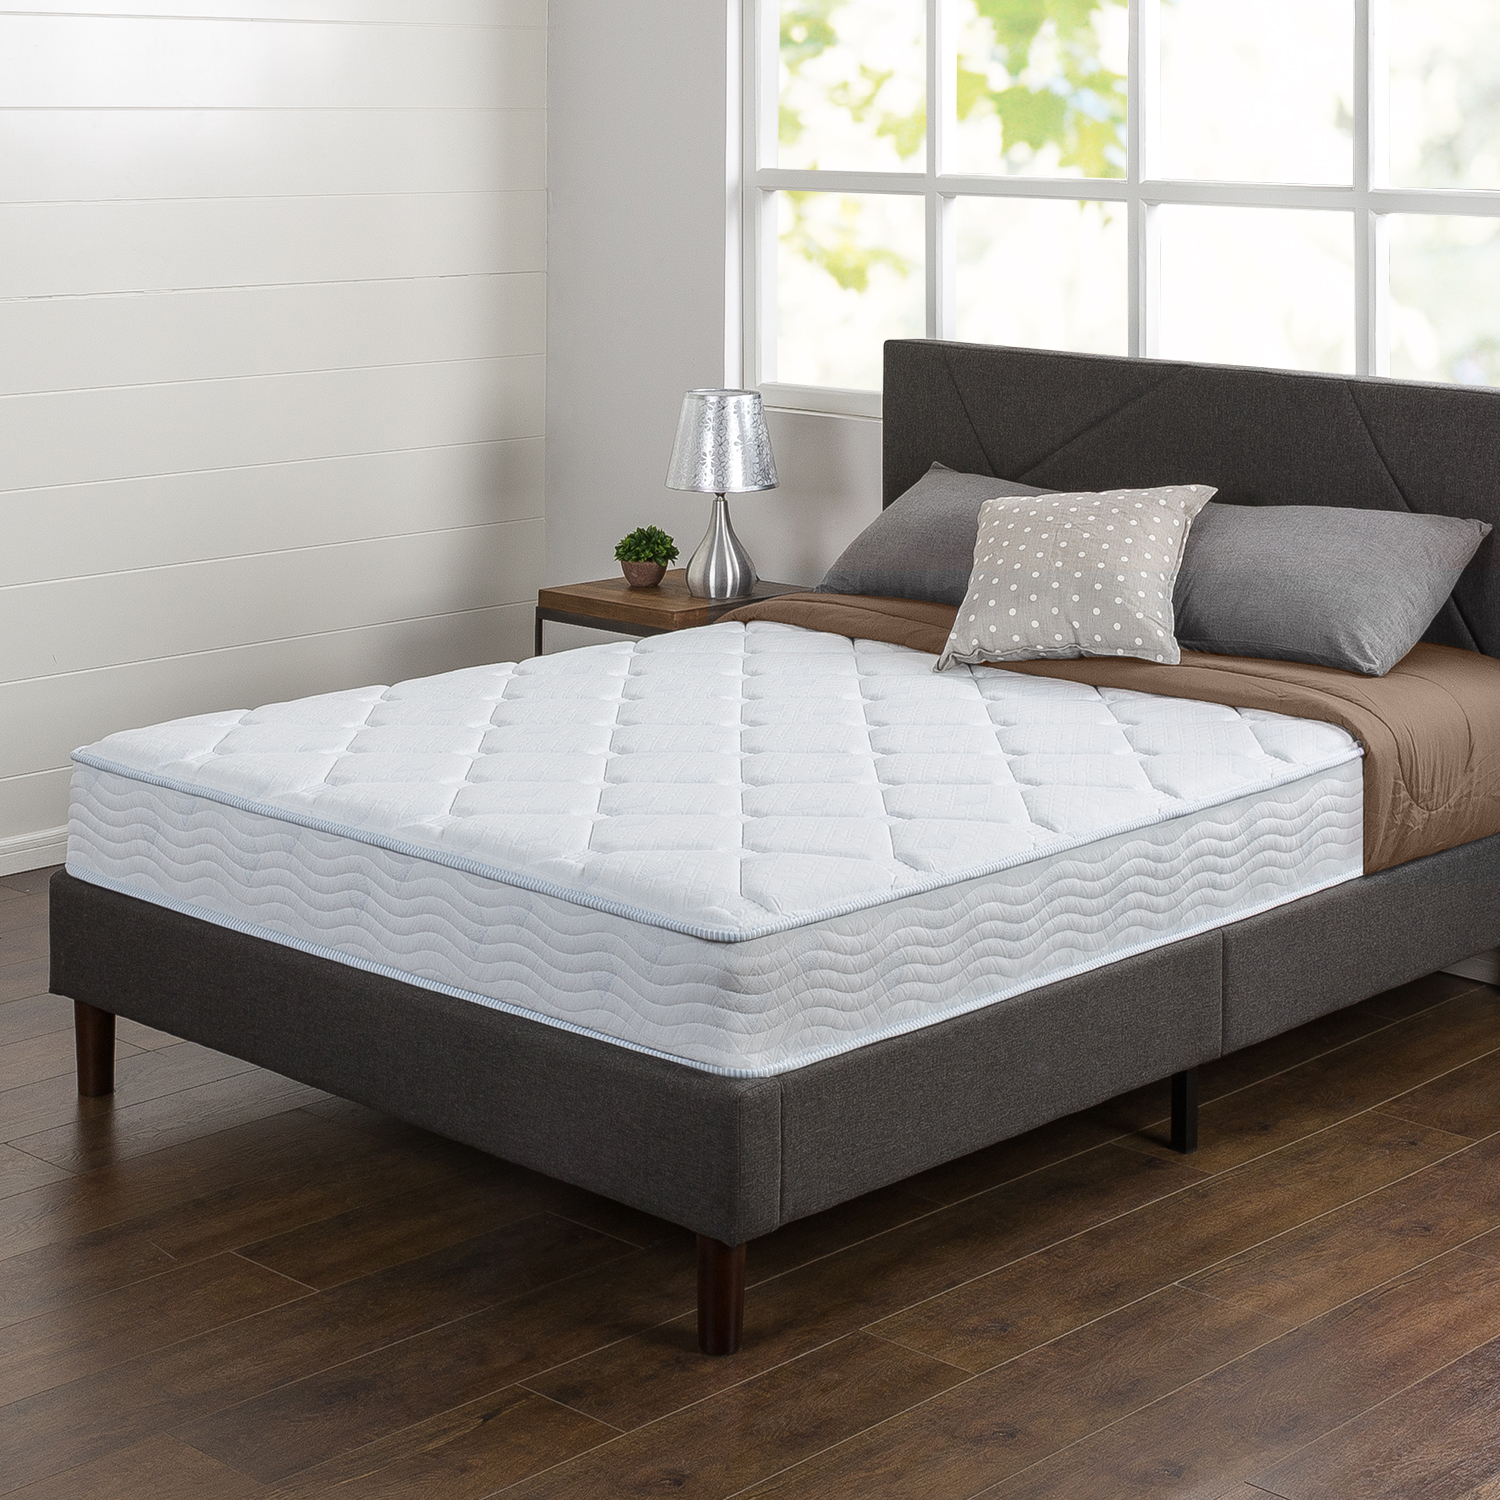 Spa Sensations 8 Inch Spring and Gel Memory Foam Mattress by Zinus